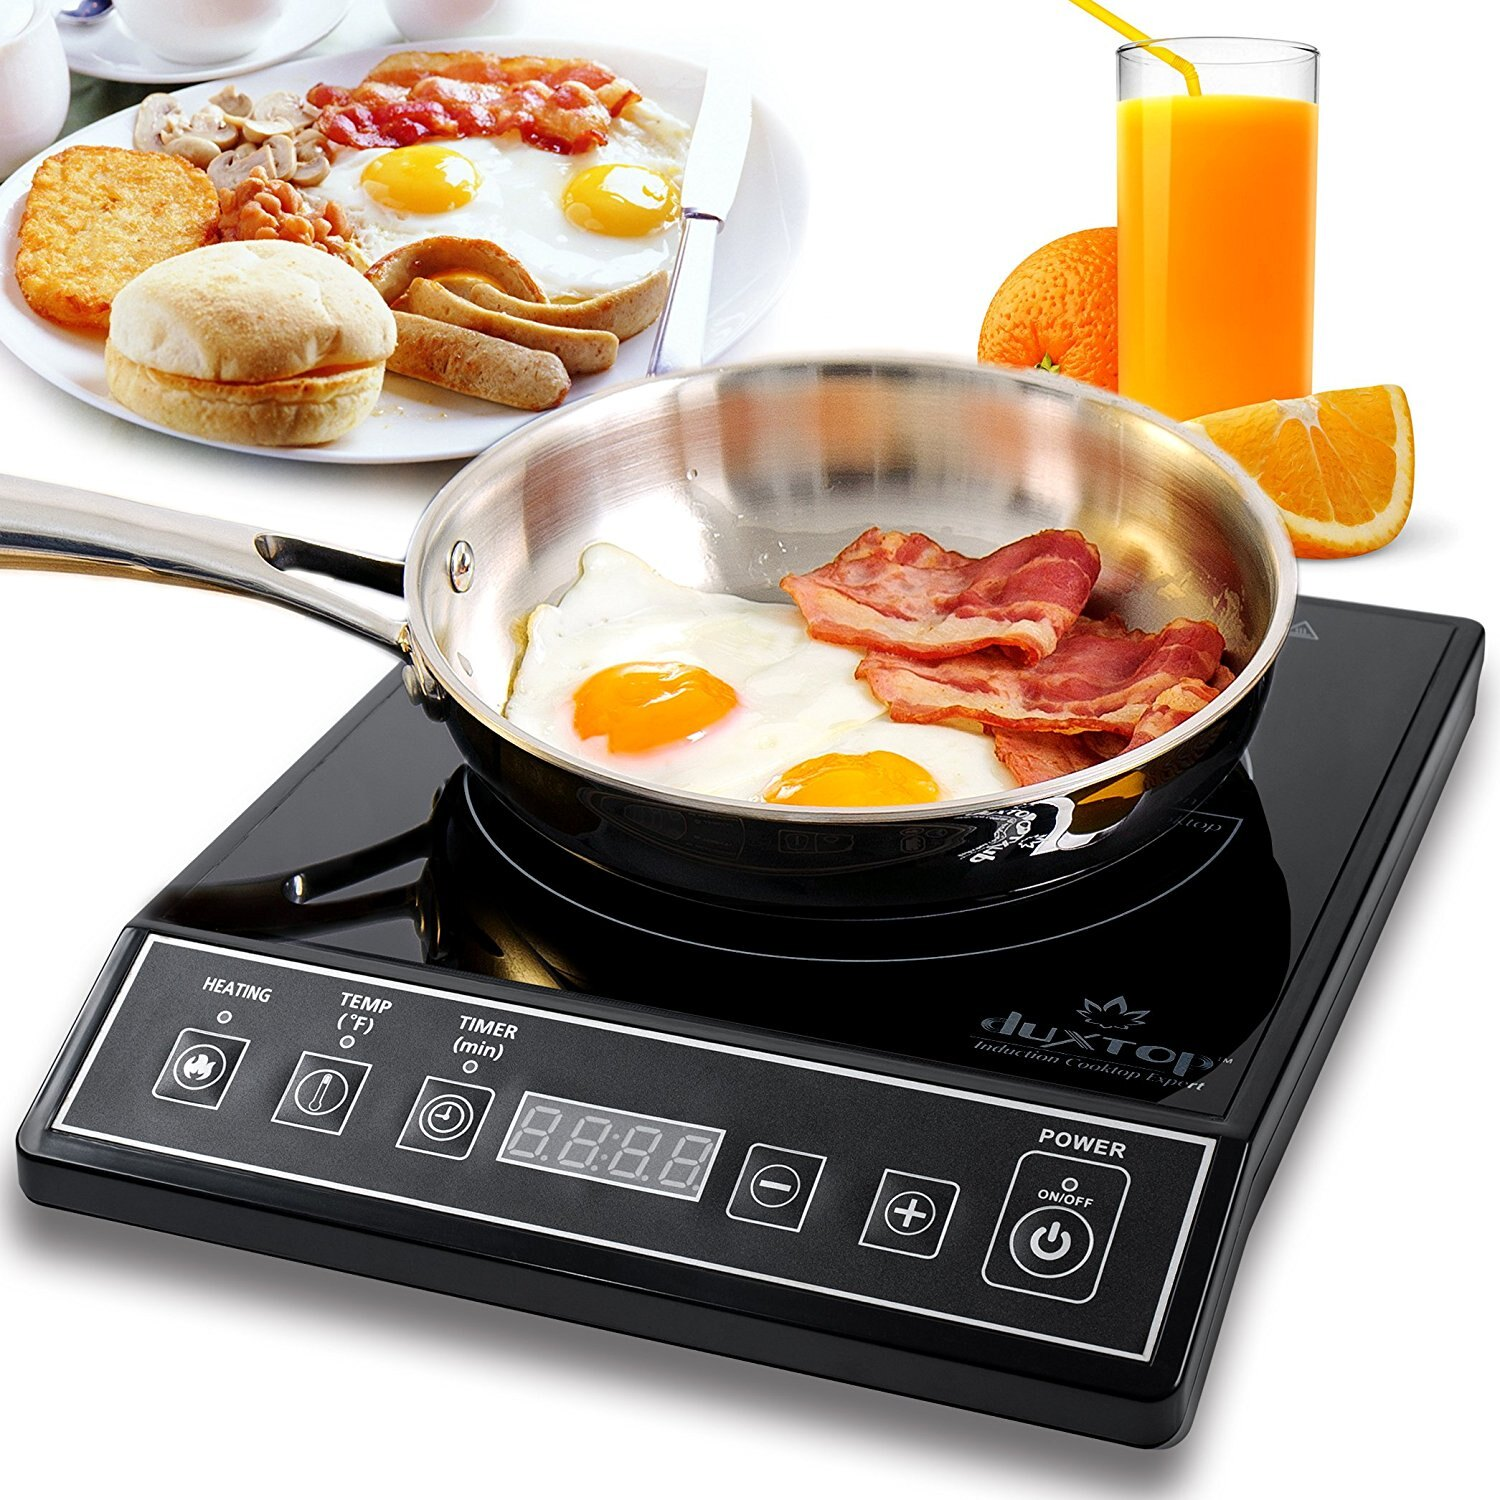 Secura 9100mc 1800w Portable Induction Cooktop Countertop Burner Black 0